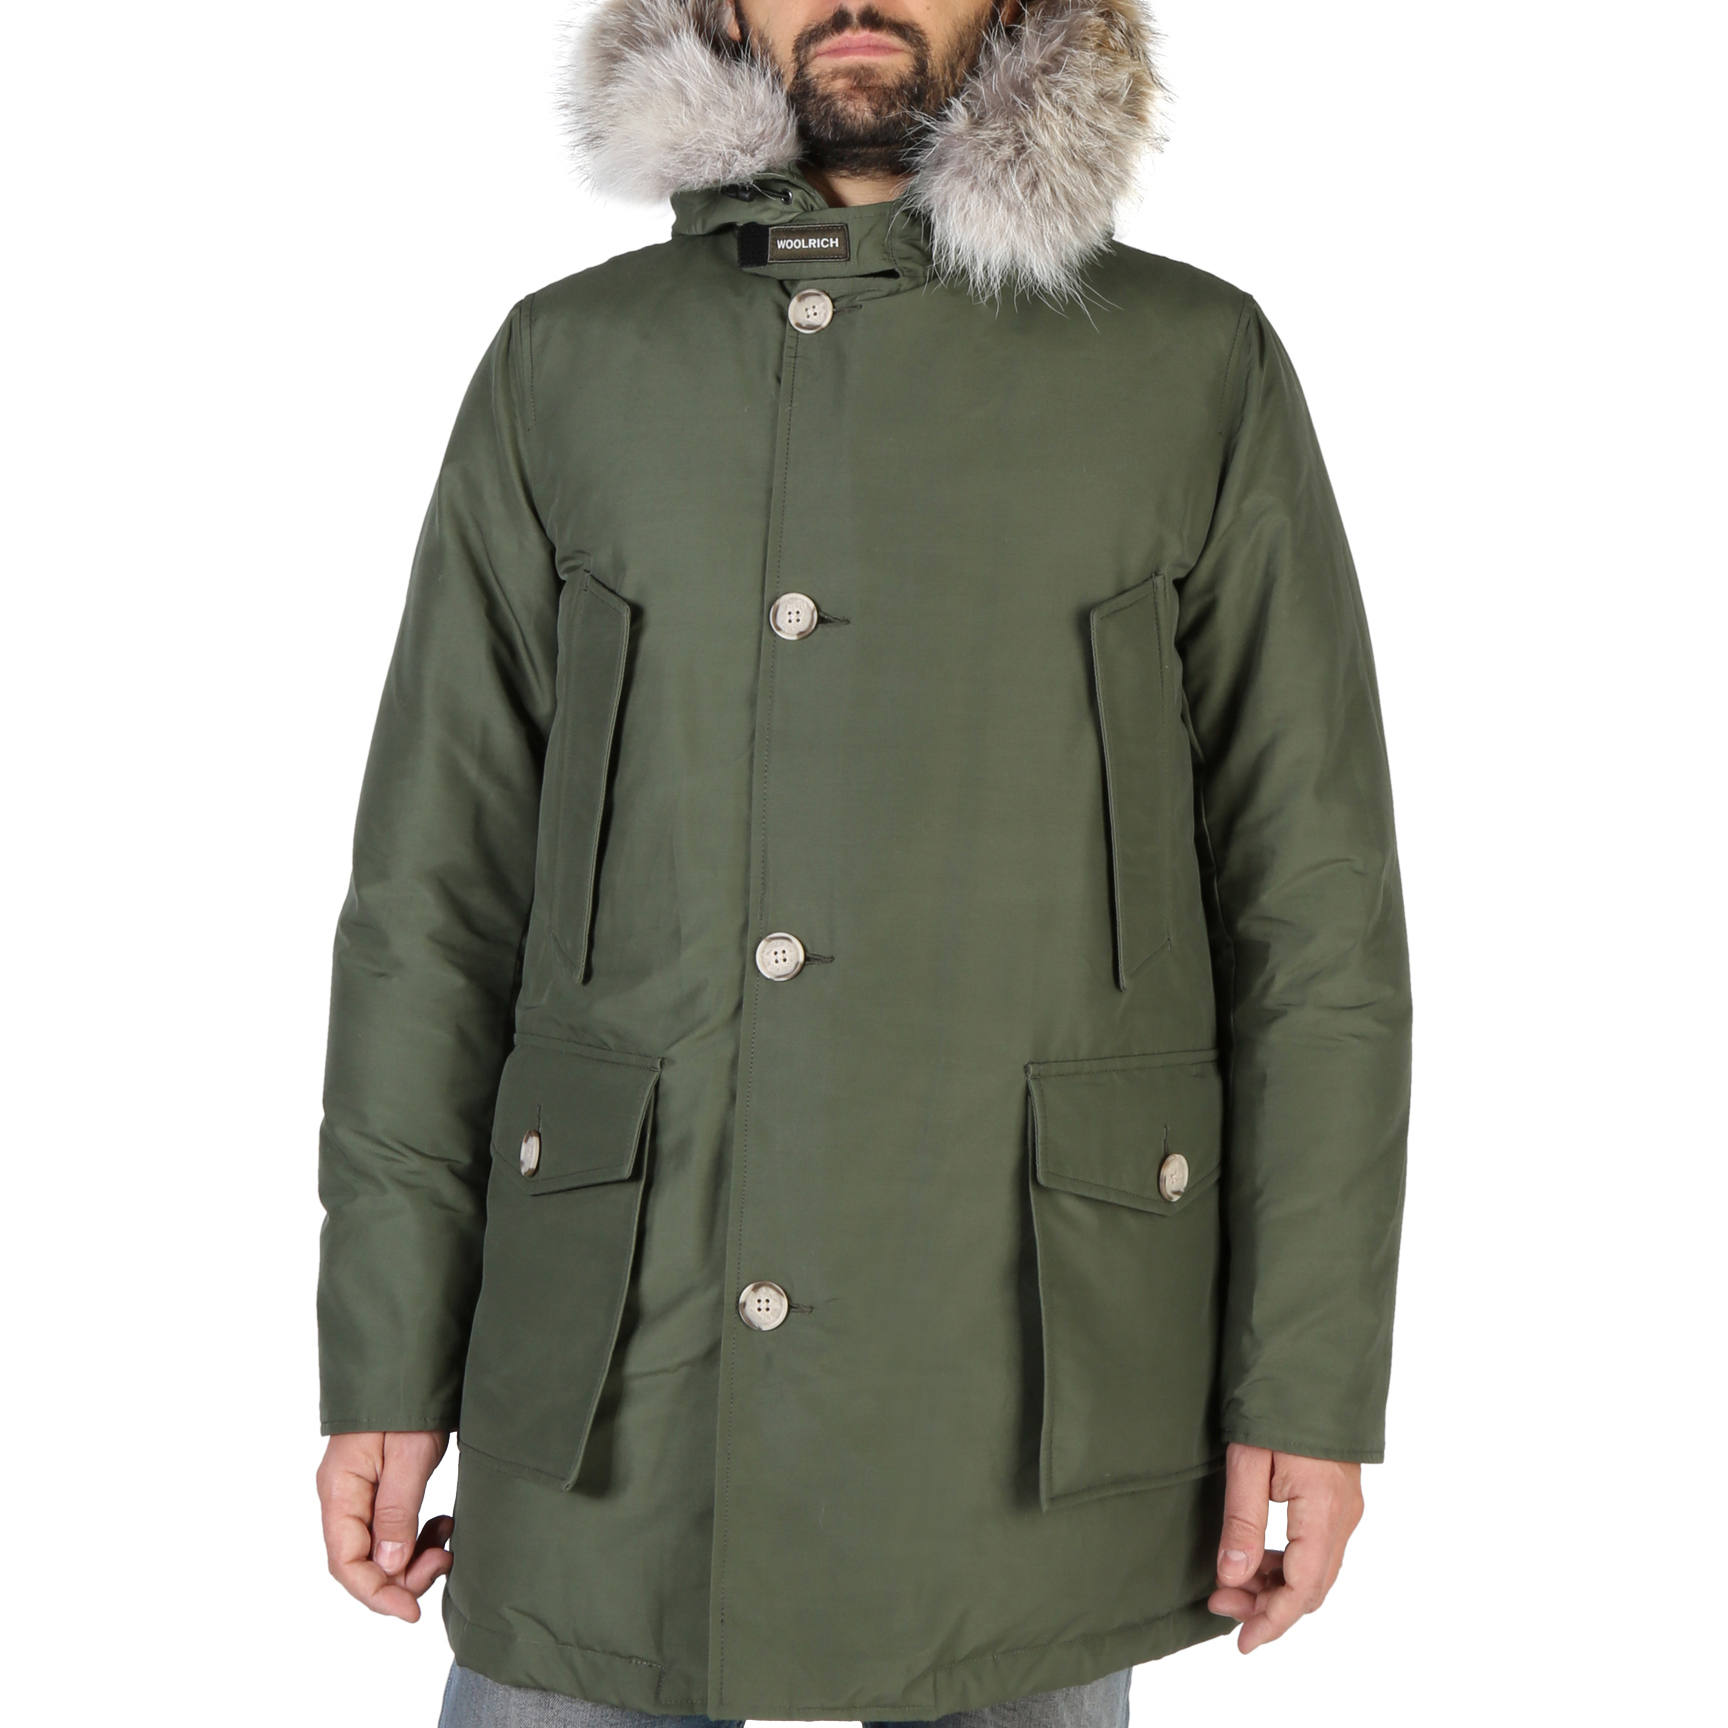 Giacche Woolrich WOCPS2880 Uomo Verde 104046